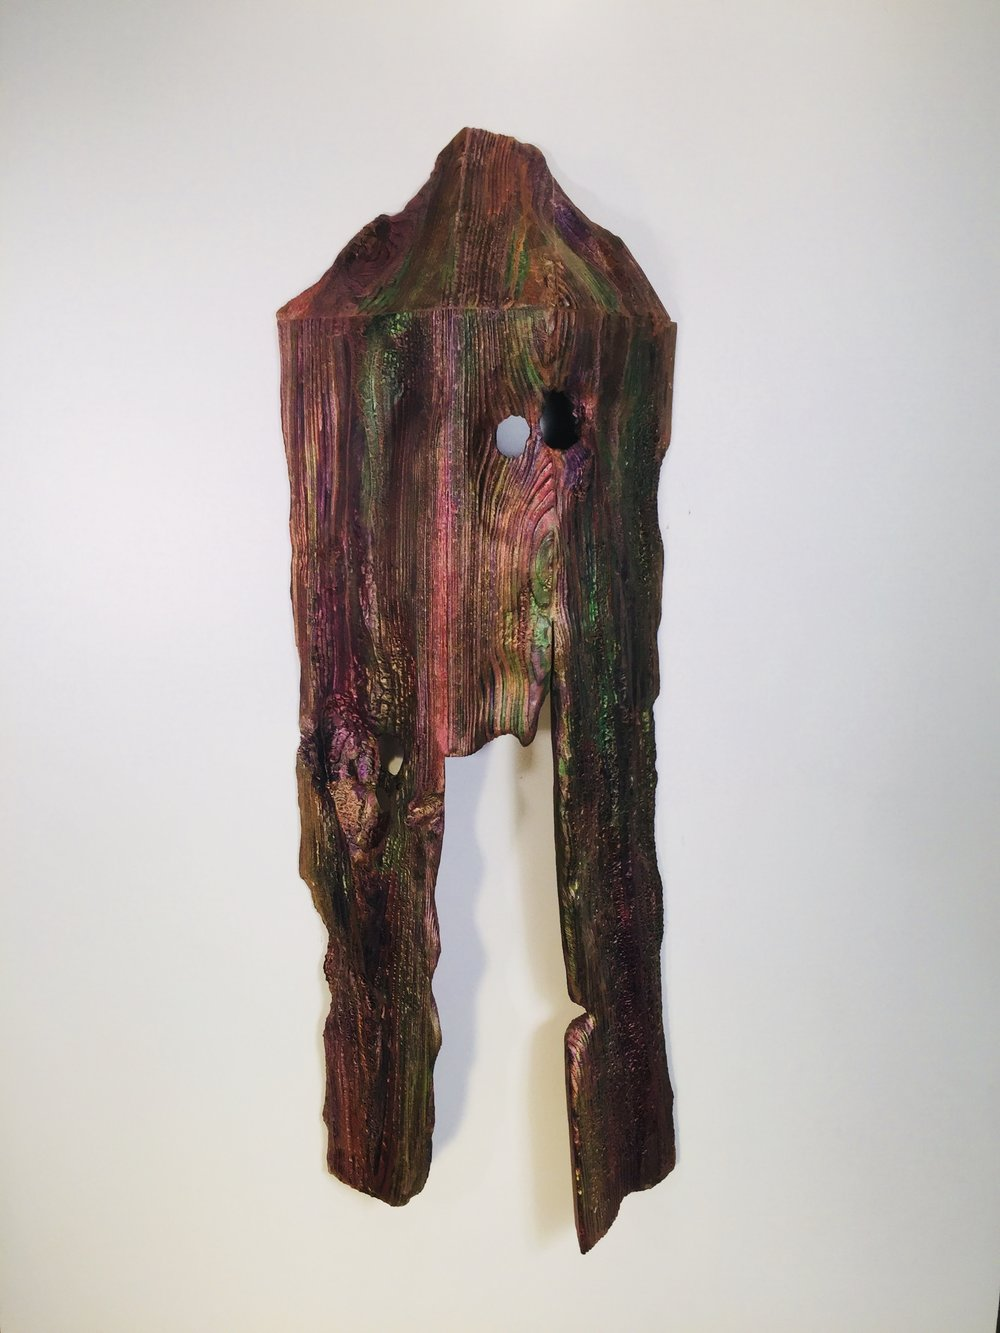 2 Joel Voisard_Incendiary VI_48x16x8_Wood and Pigment_2017_3000.jpg